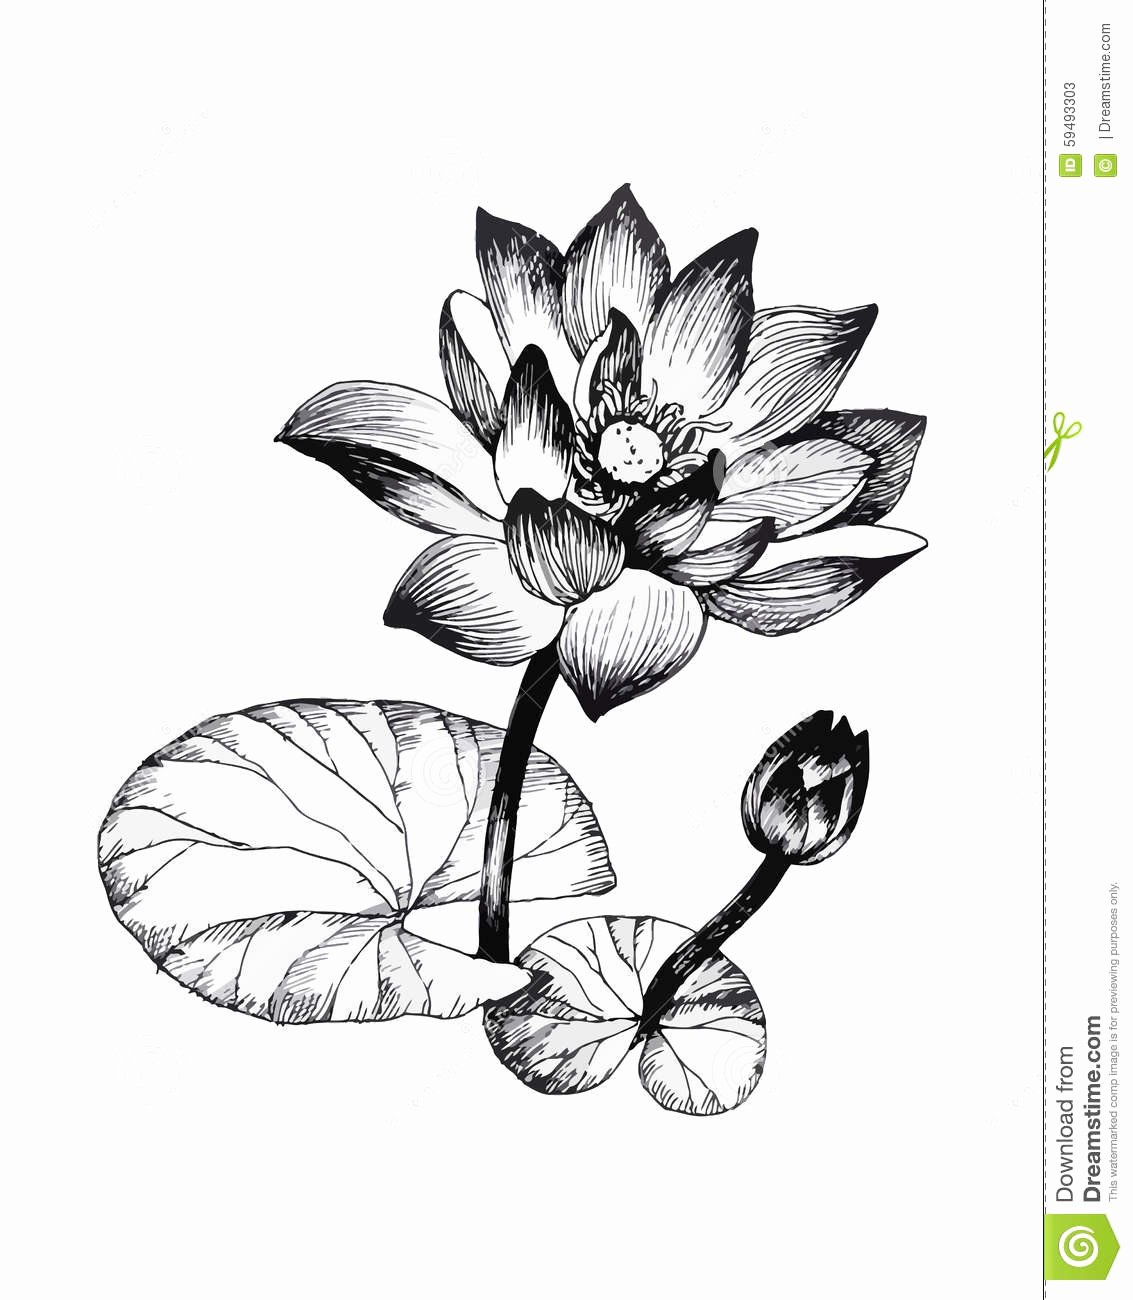 Black and White Illustration Fresh Water Lily Flowers Pond Black and White Illustration